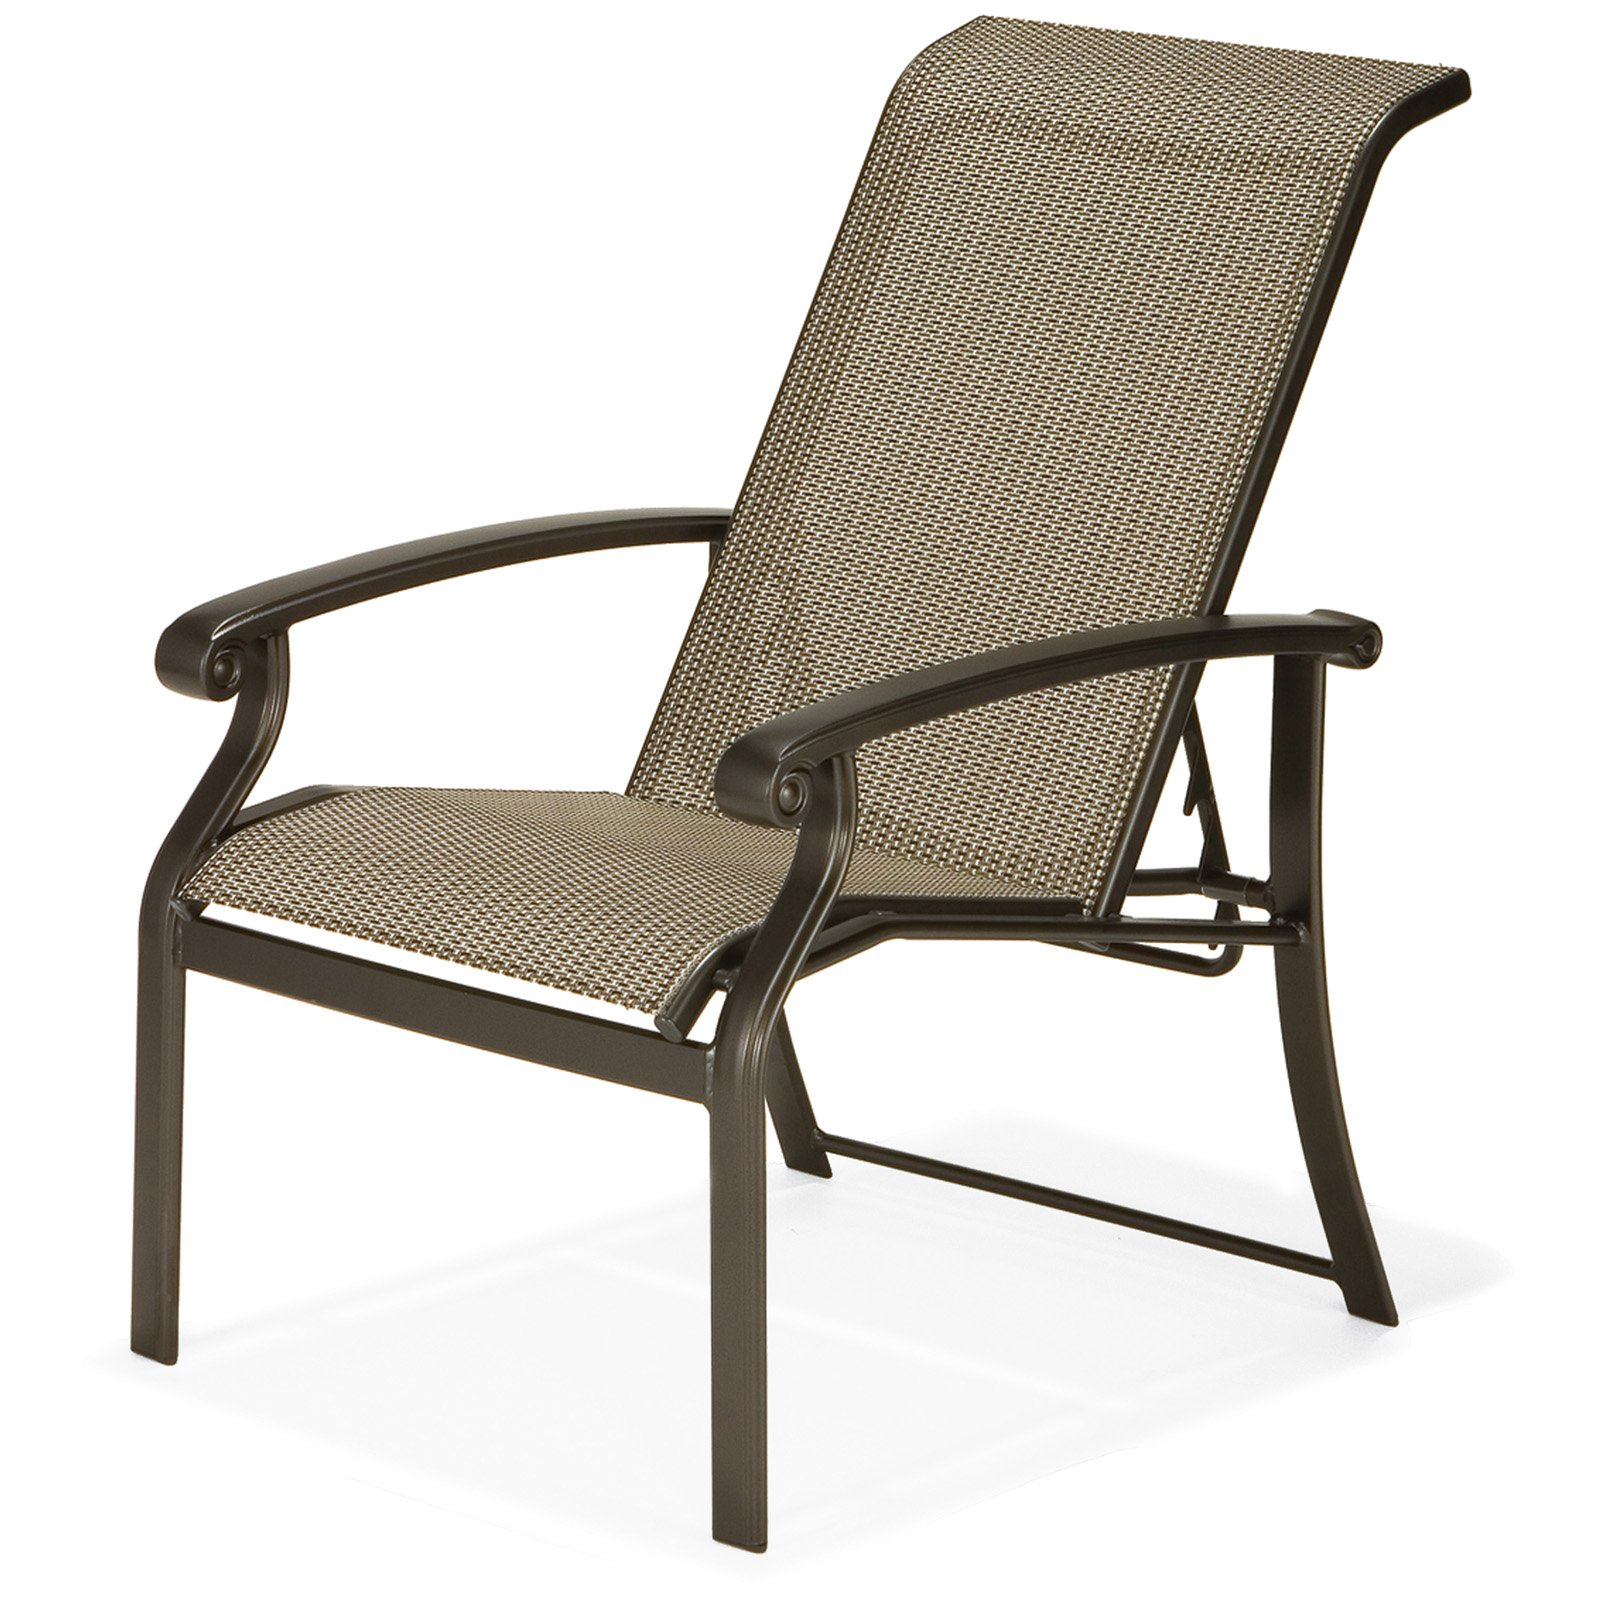 Image of: Modern Patio Sling Chairs